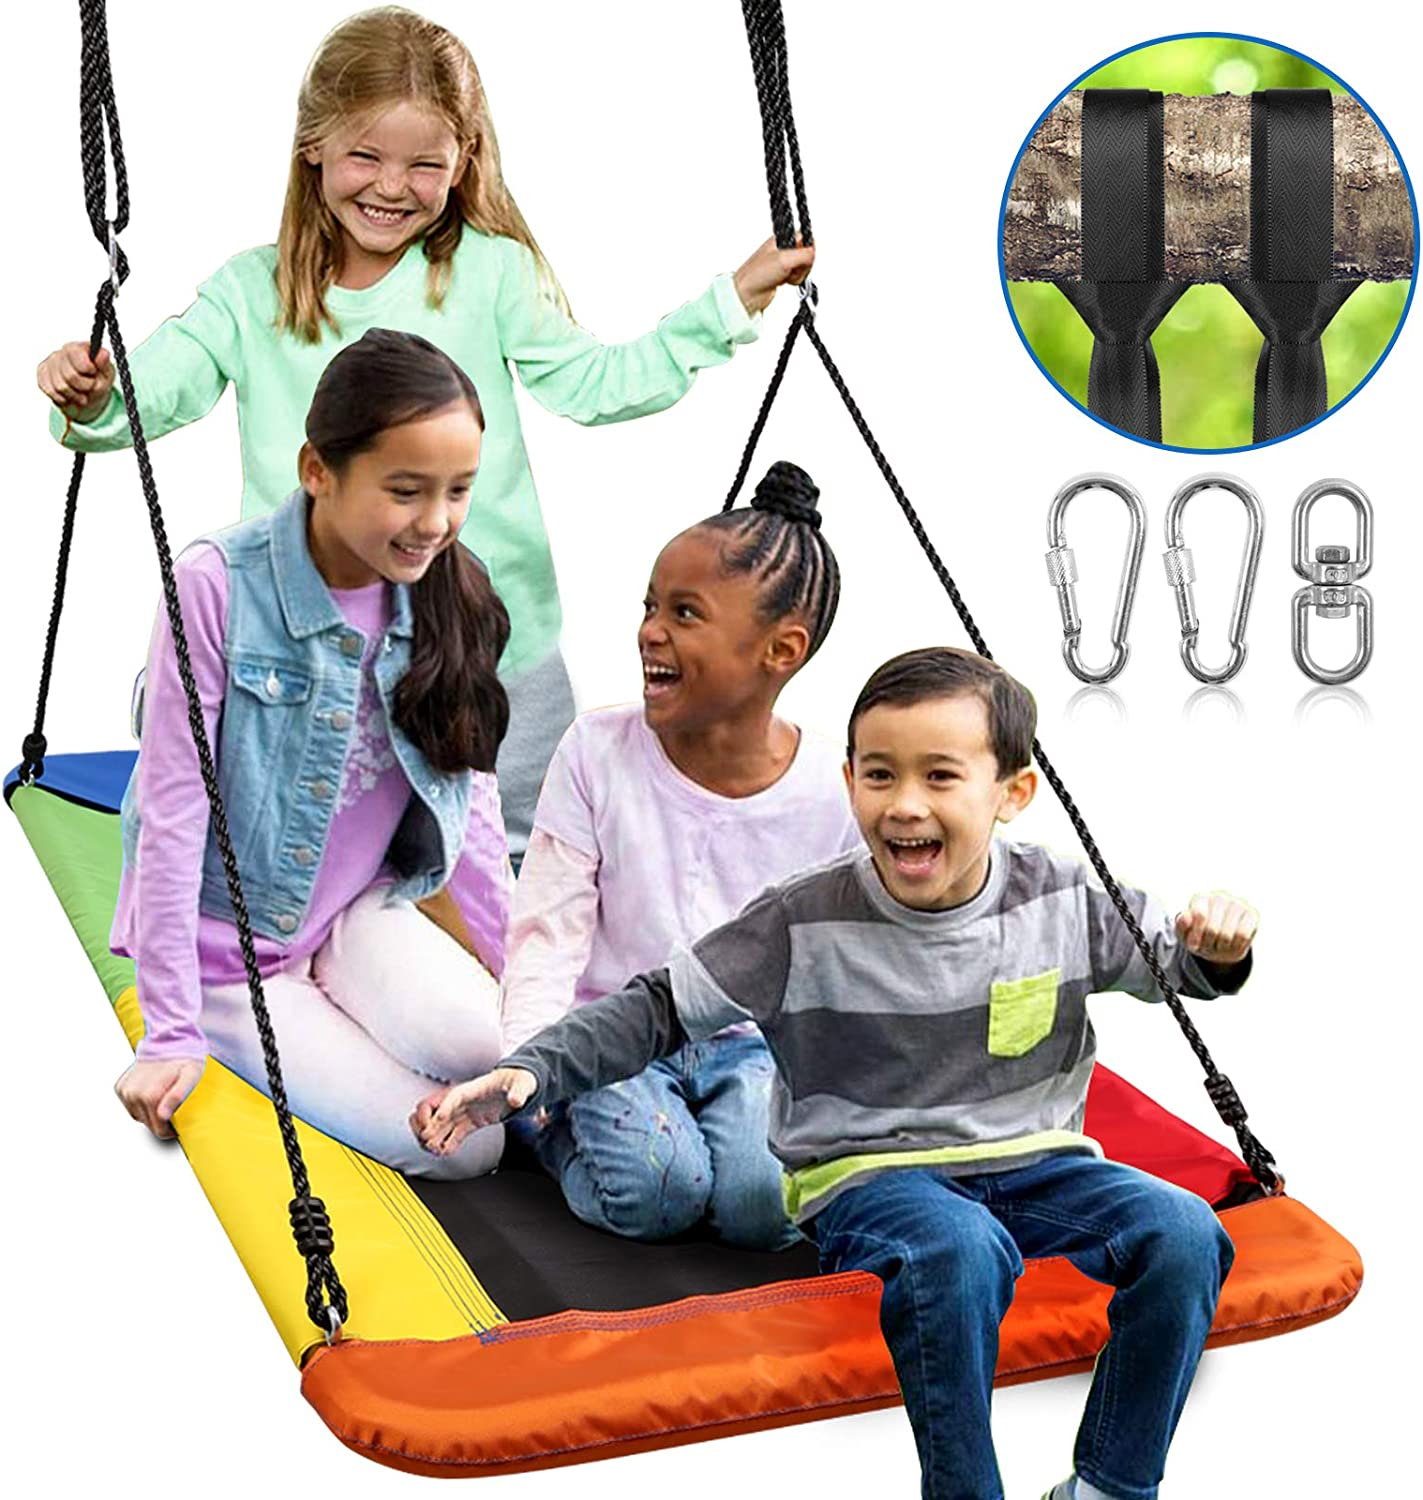 Odoland 60inch Giant Platform Tree Swing for Kids and Adult - Wa